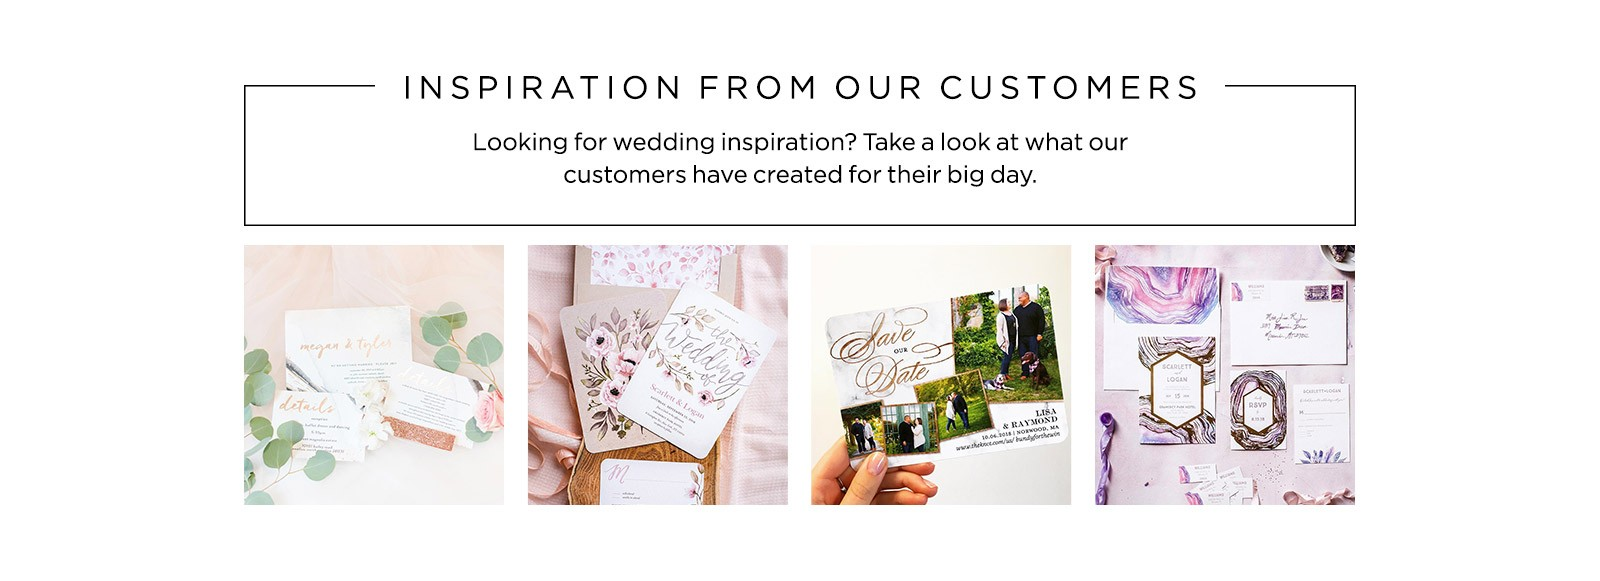 wedding inspiration from customers